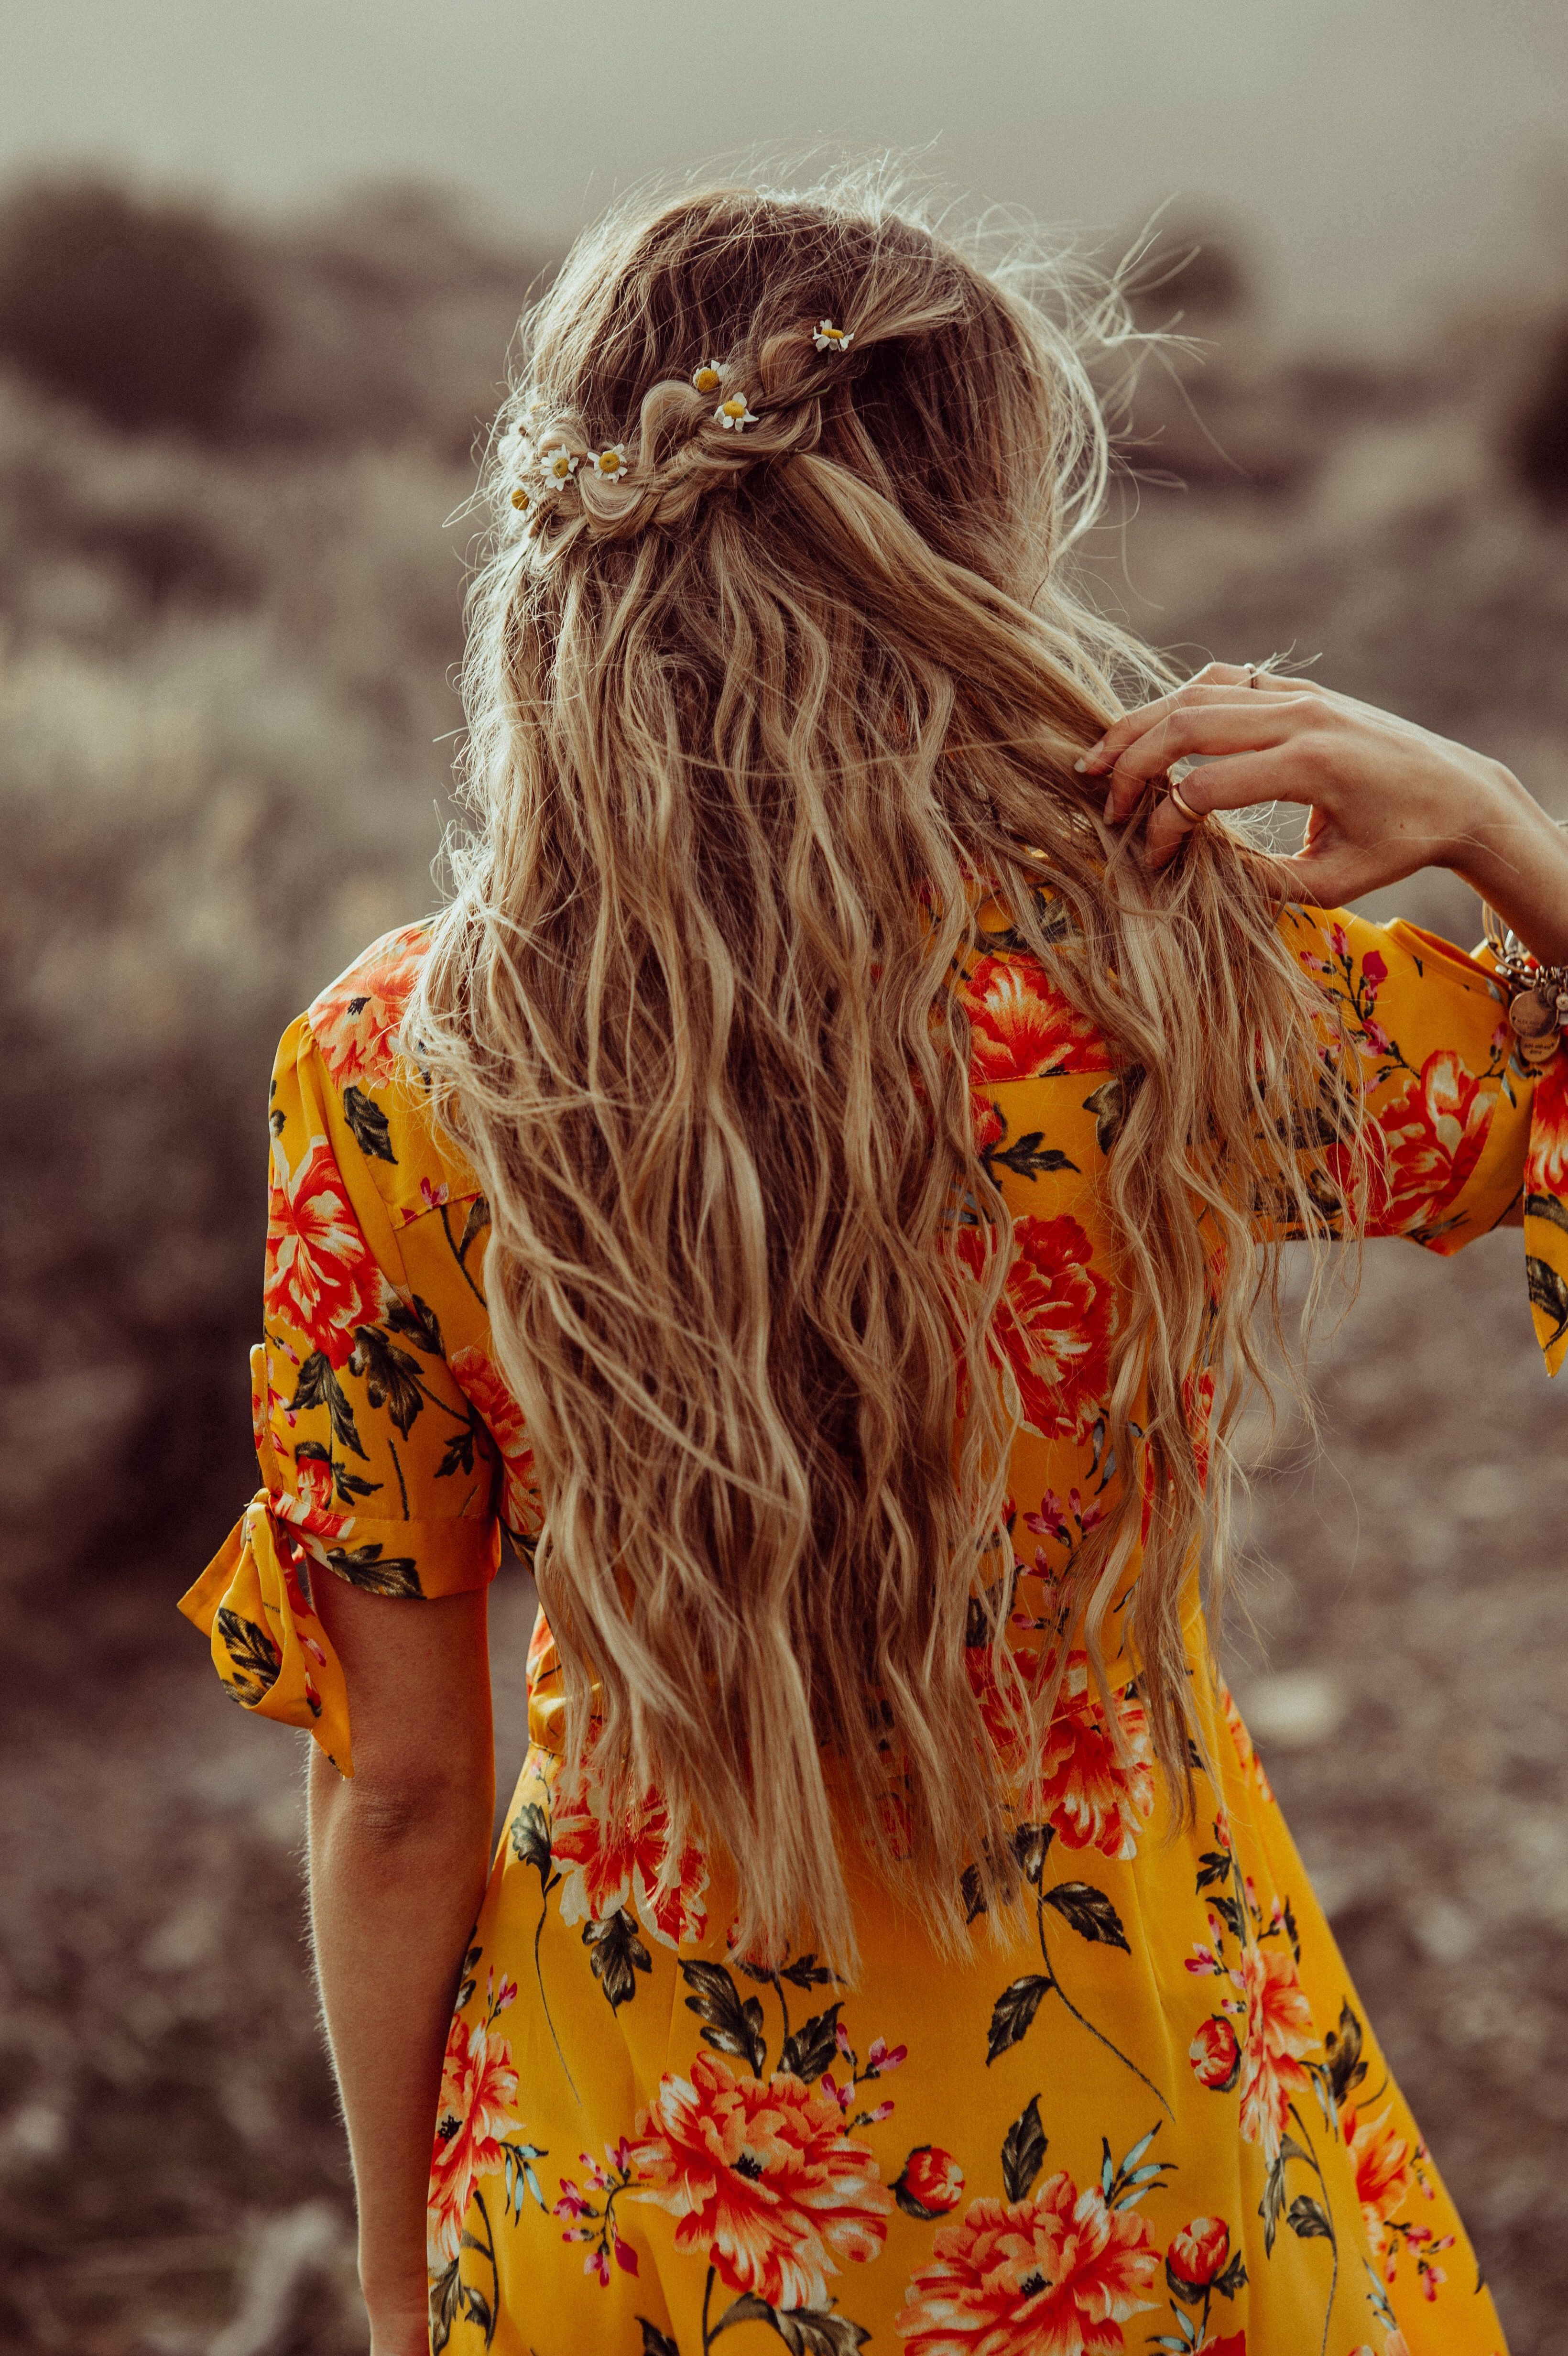 Bohemian braided hairstyle | Braided hairstyles, Hair styles, Hair 101